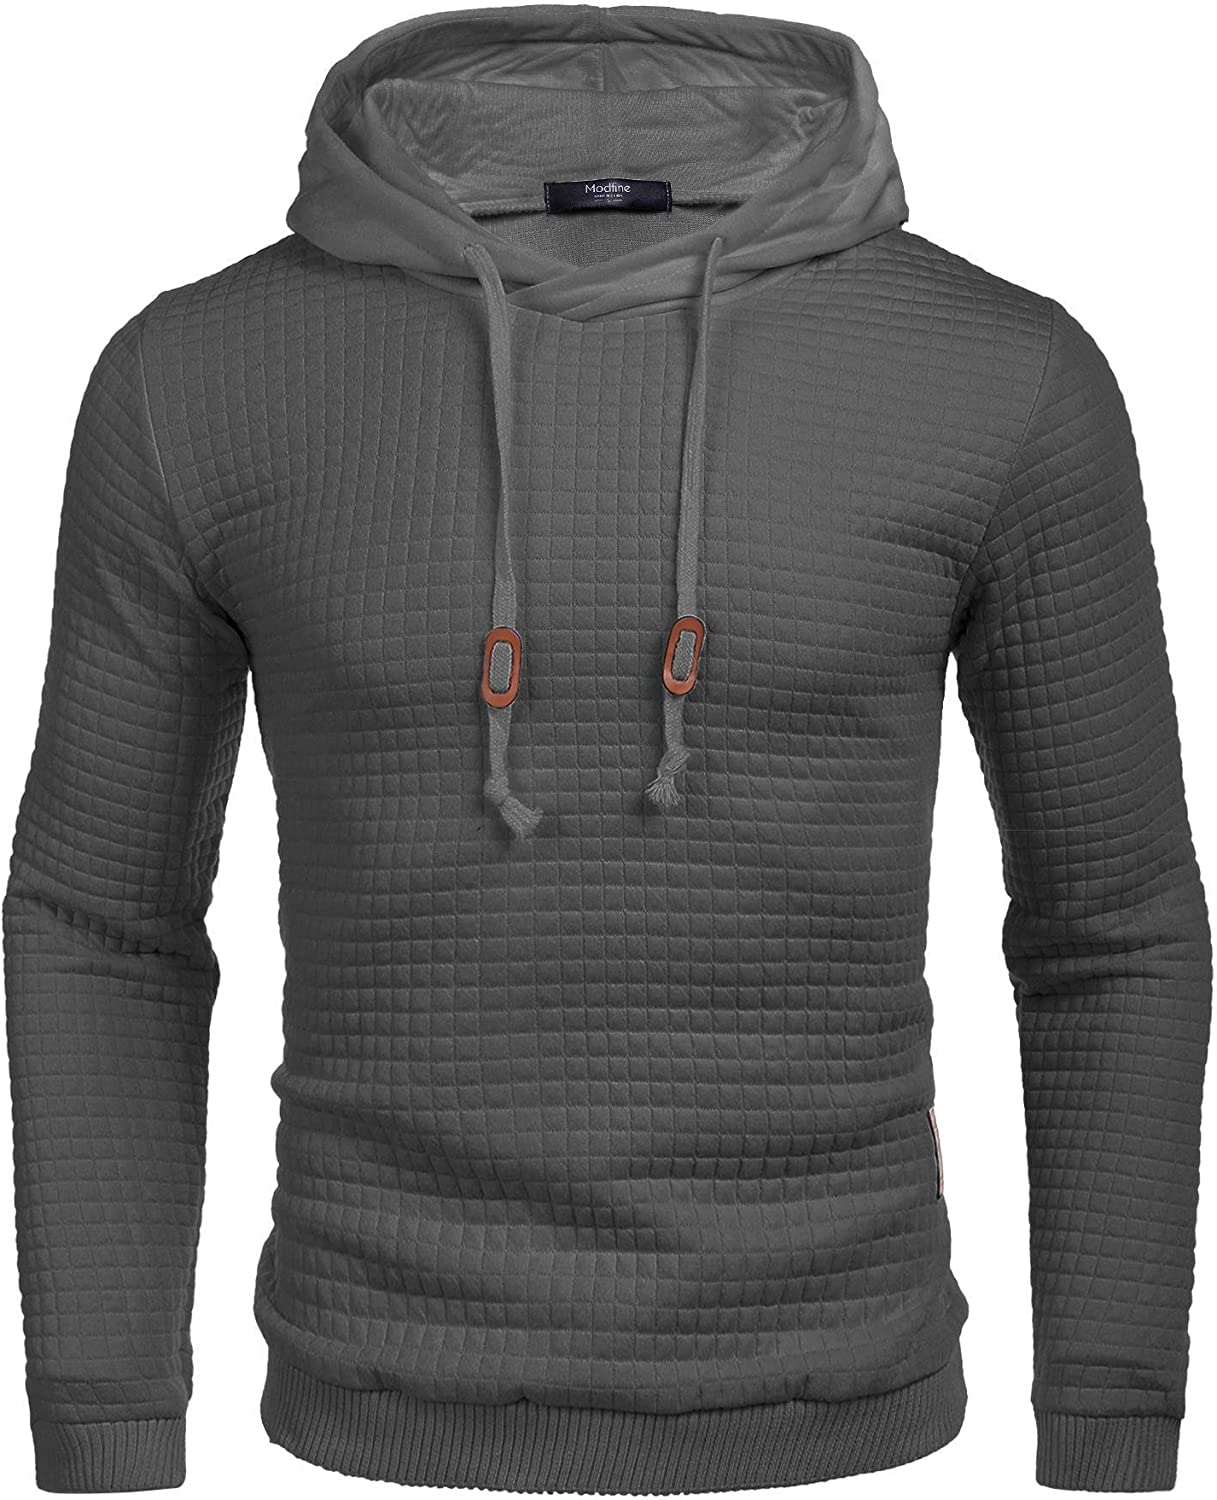 COOFANDY Mens Sweatshirt Hipster Gym Long Sleeve Drawstring Hooded Plaid Jacquard Pullover Hoodies